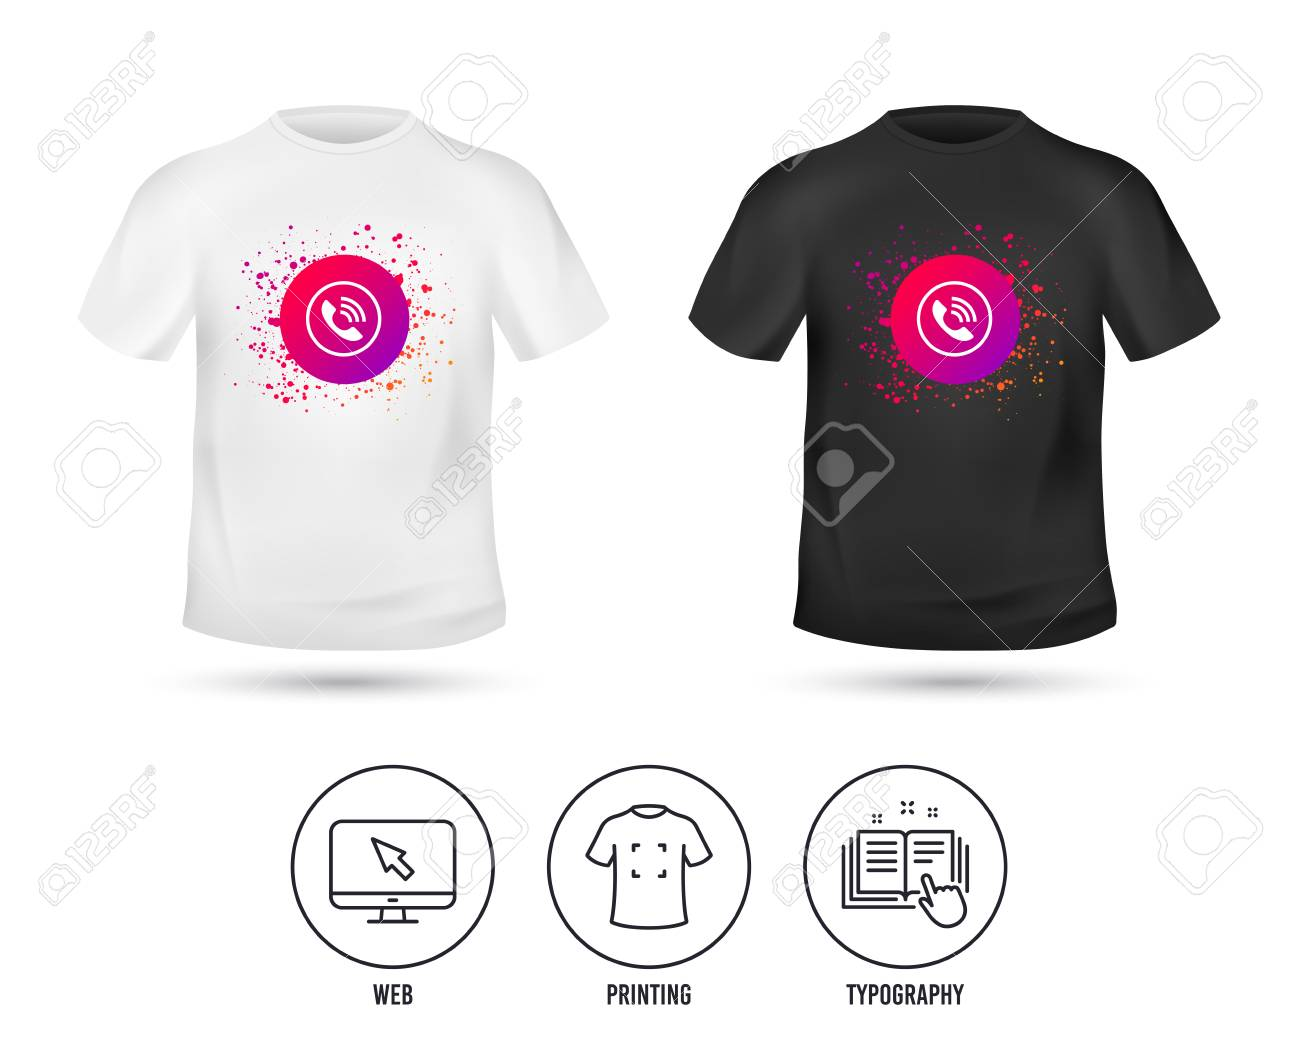 t shirt mock up template phone sign icon call support center royalty free cliparts vectors and stock illustration image 124794297 t shirt mock up template phone sign icon call support center